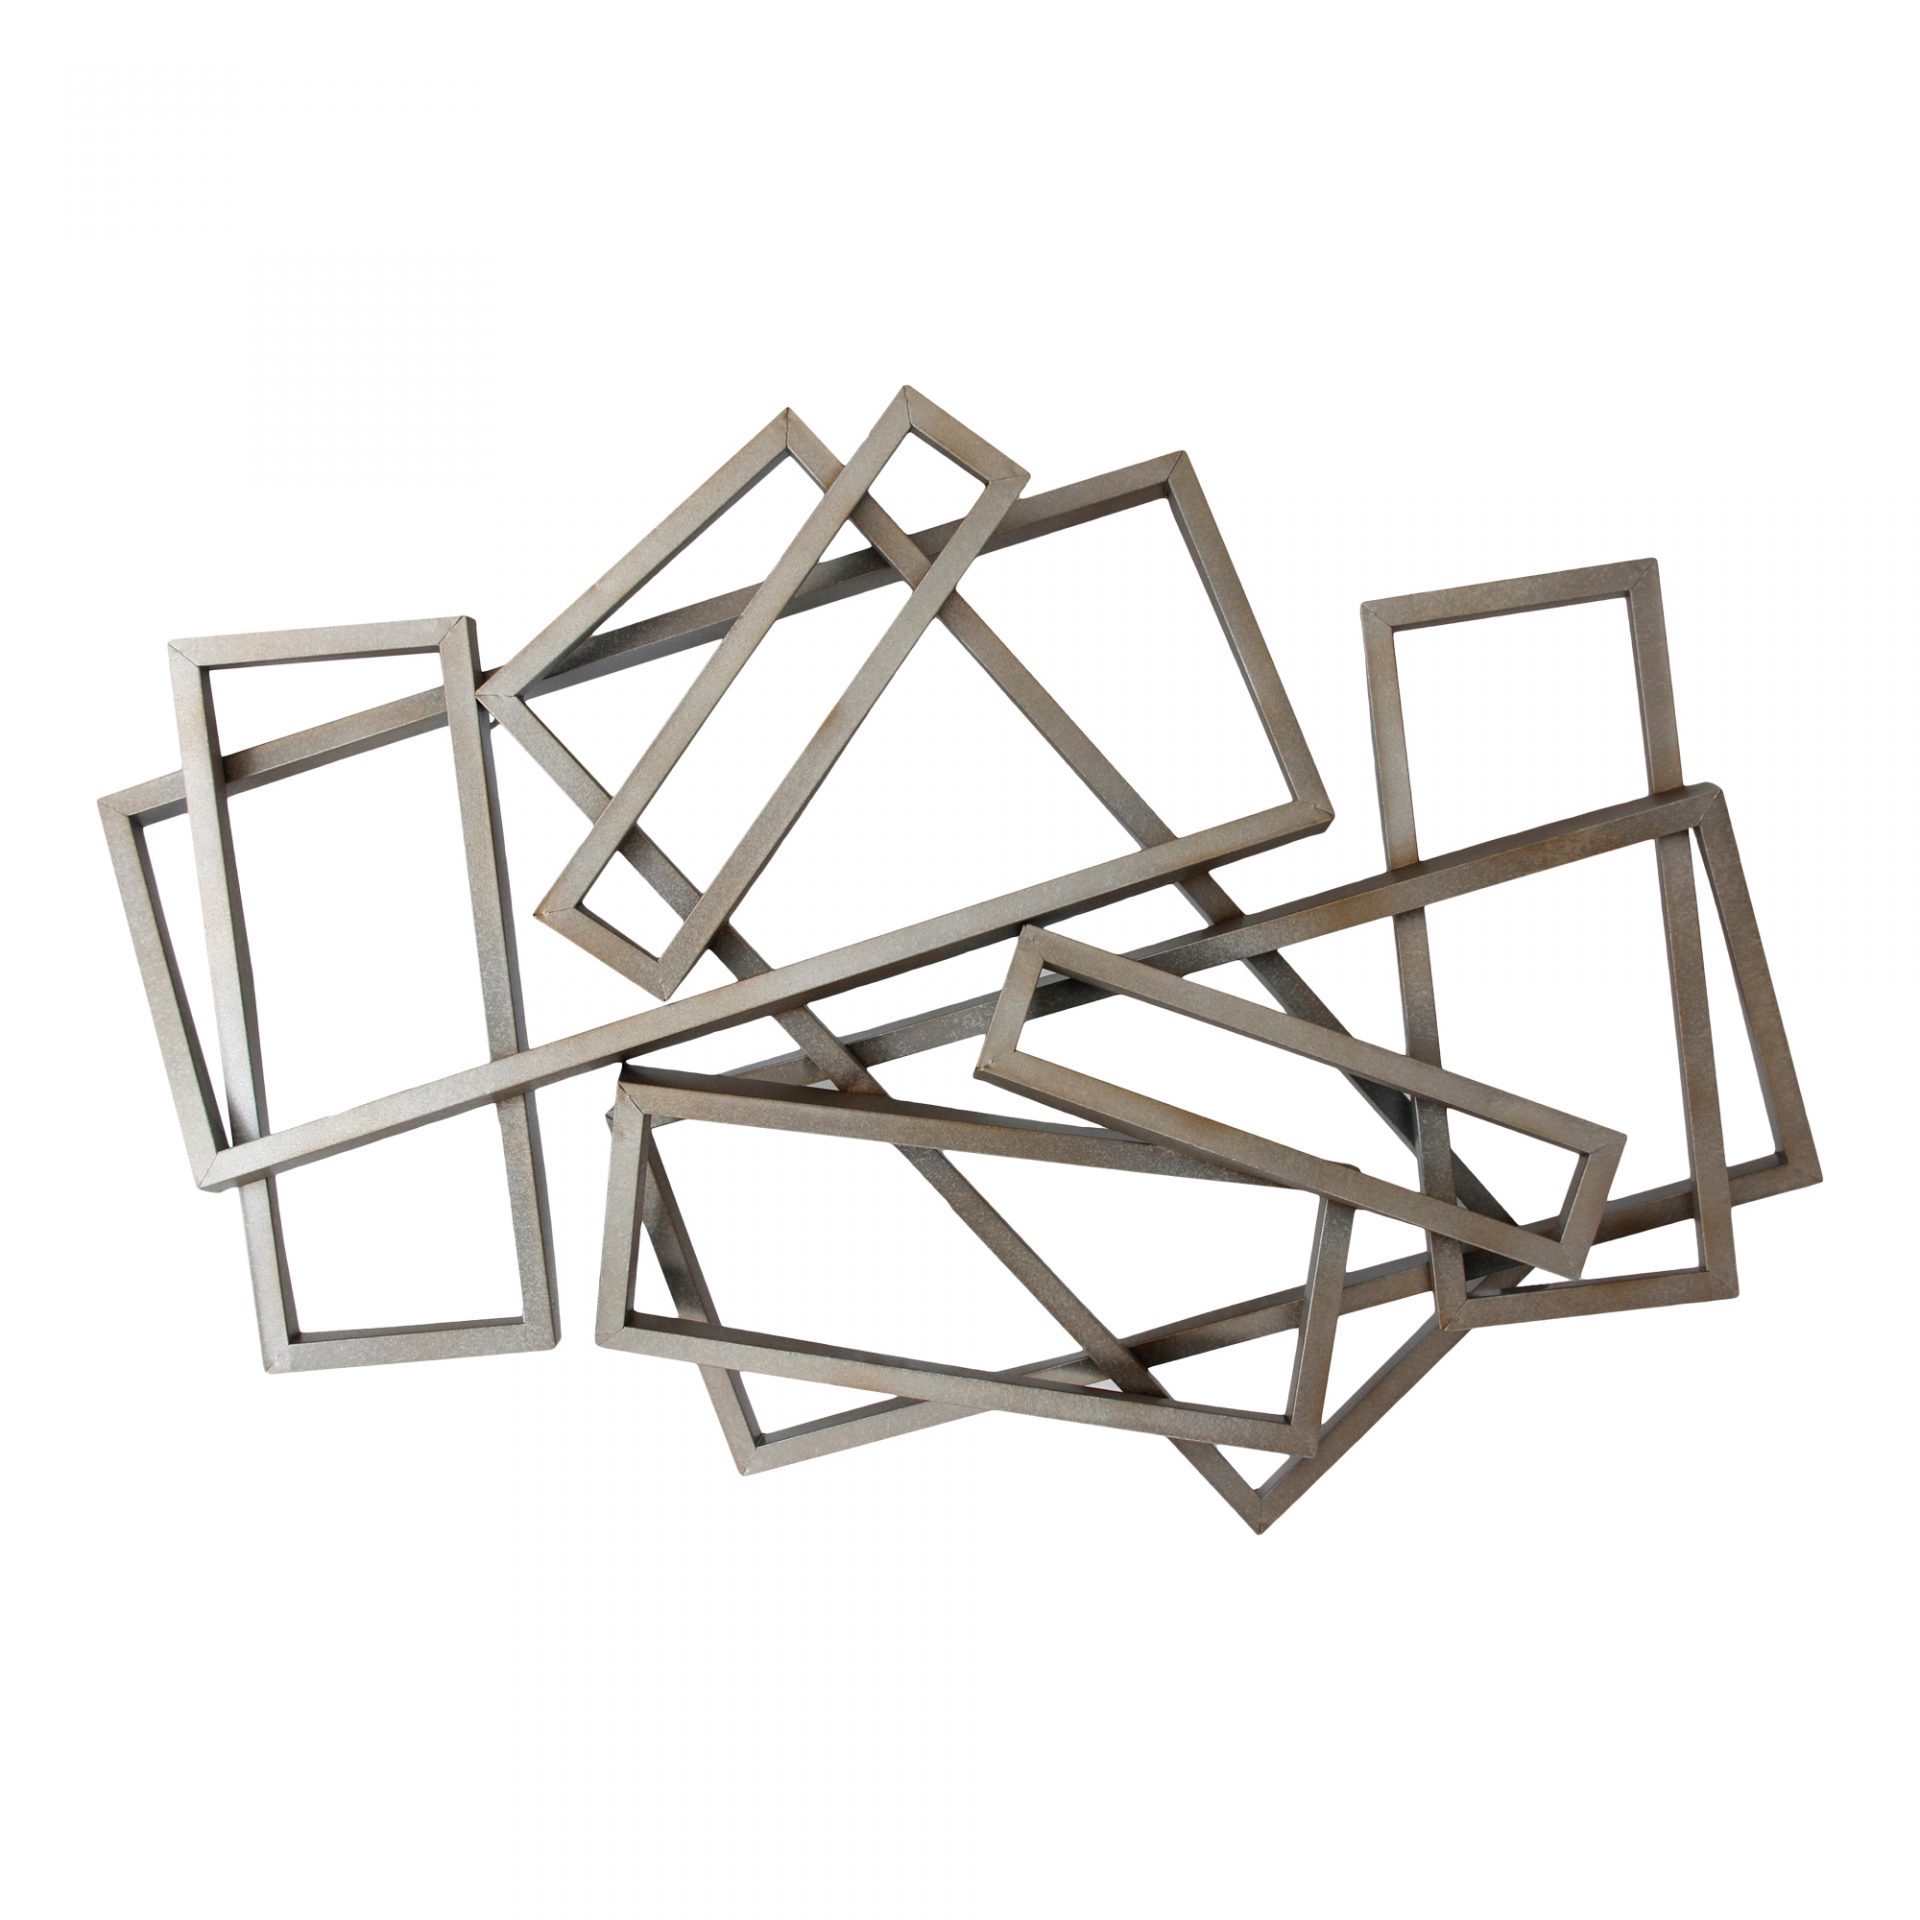 Top 20 Of 2 Piece Multiple Layer Metal Flower Wall Decor Sets inside Set Of 3 Contemporary 6, 9, And 11 Inch Gold Tin Starburst Sculptures (Image 29 of 30)